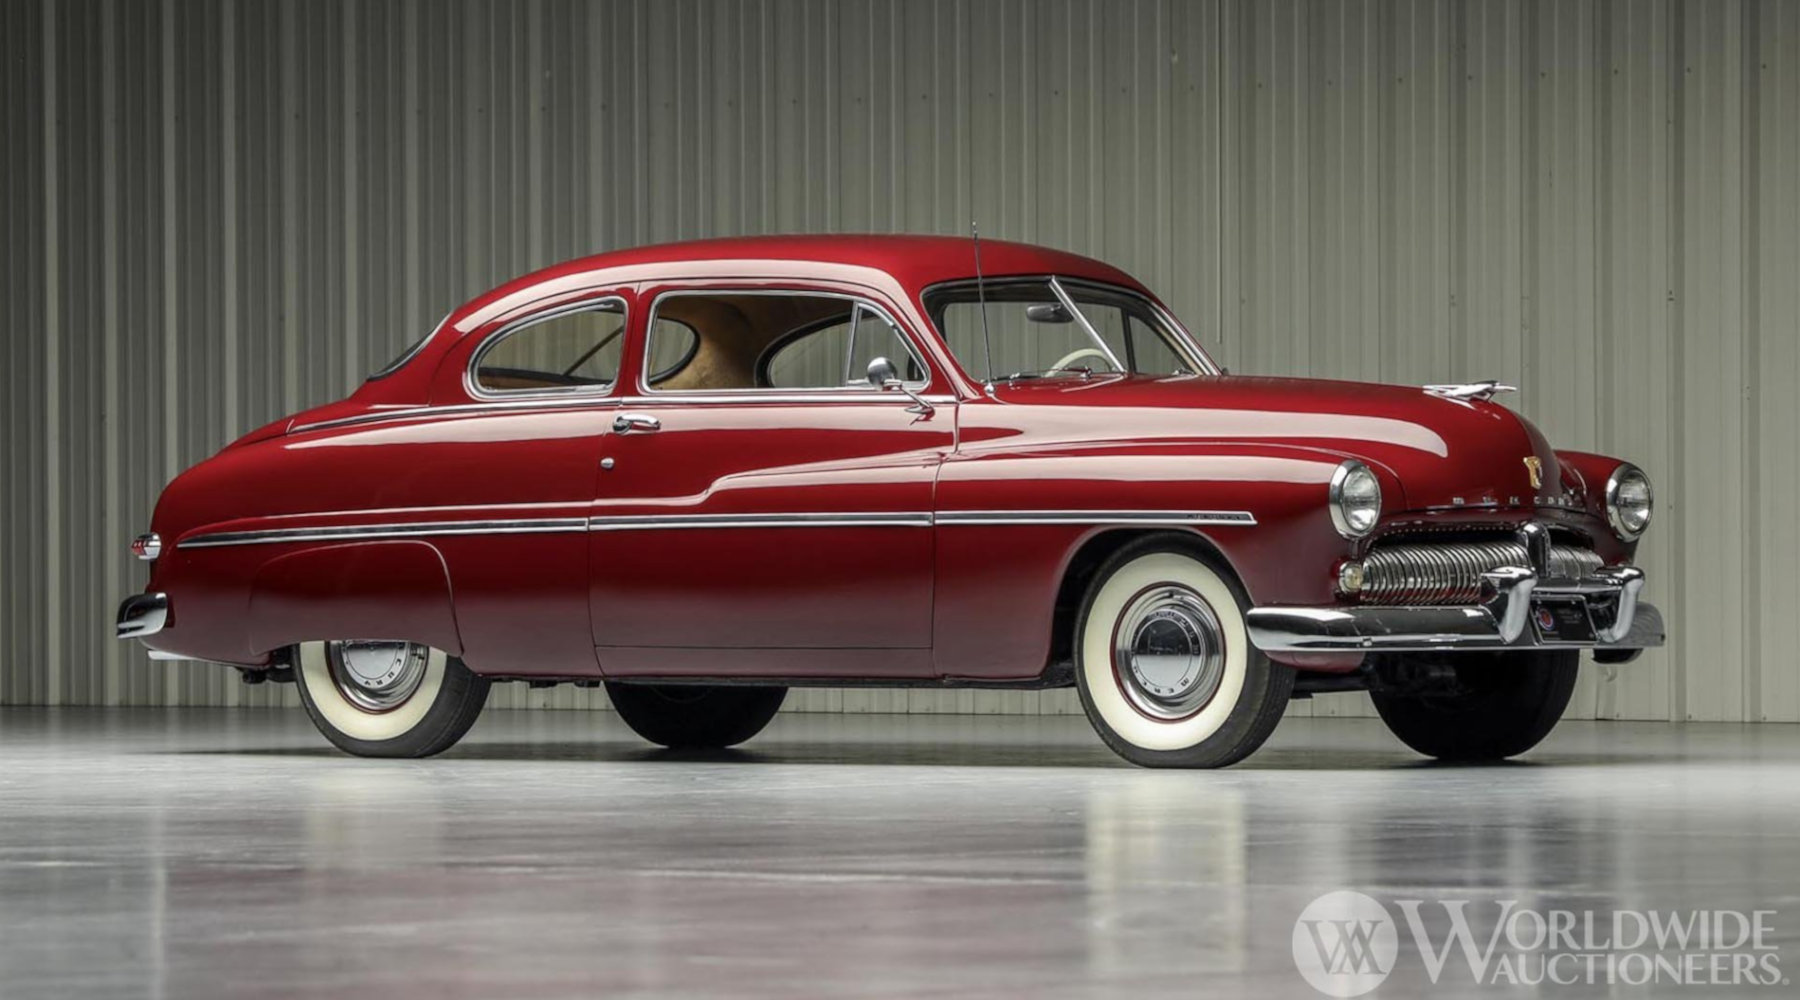 1949 Mercury Eight Coupe - Image from WorldWide Auctioneers